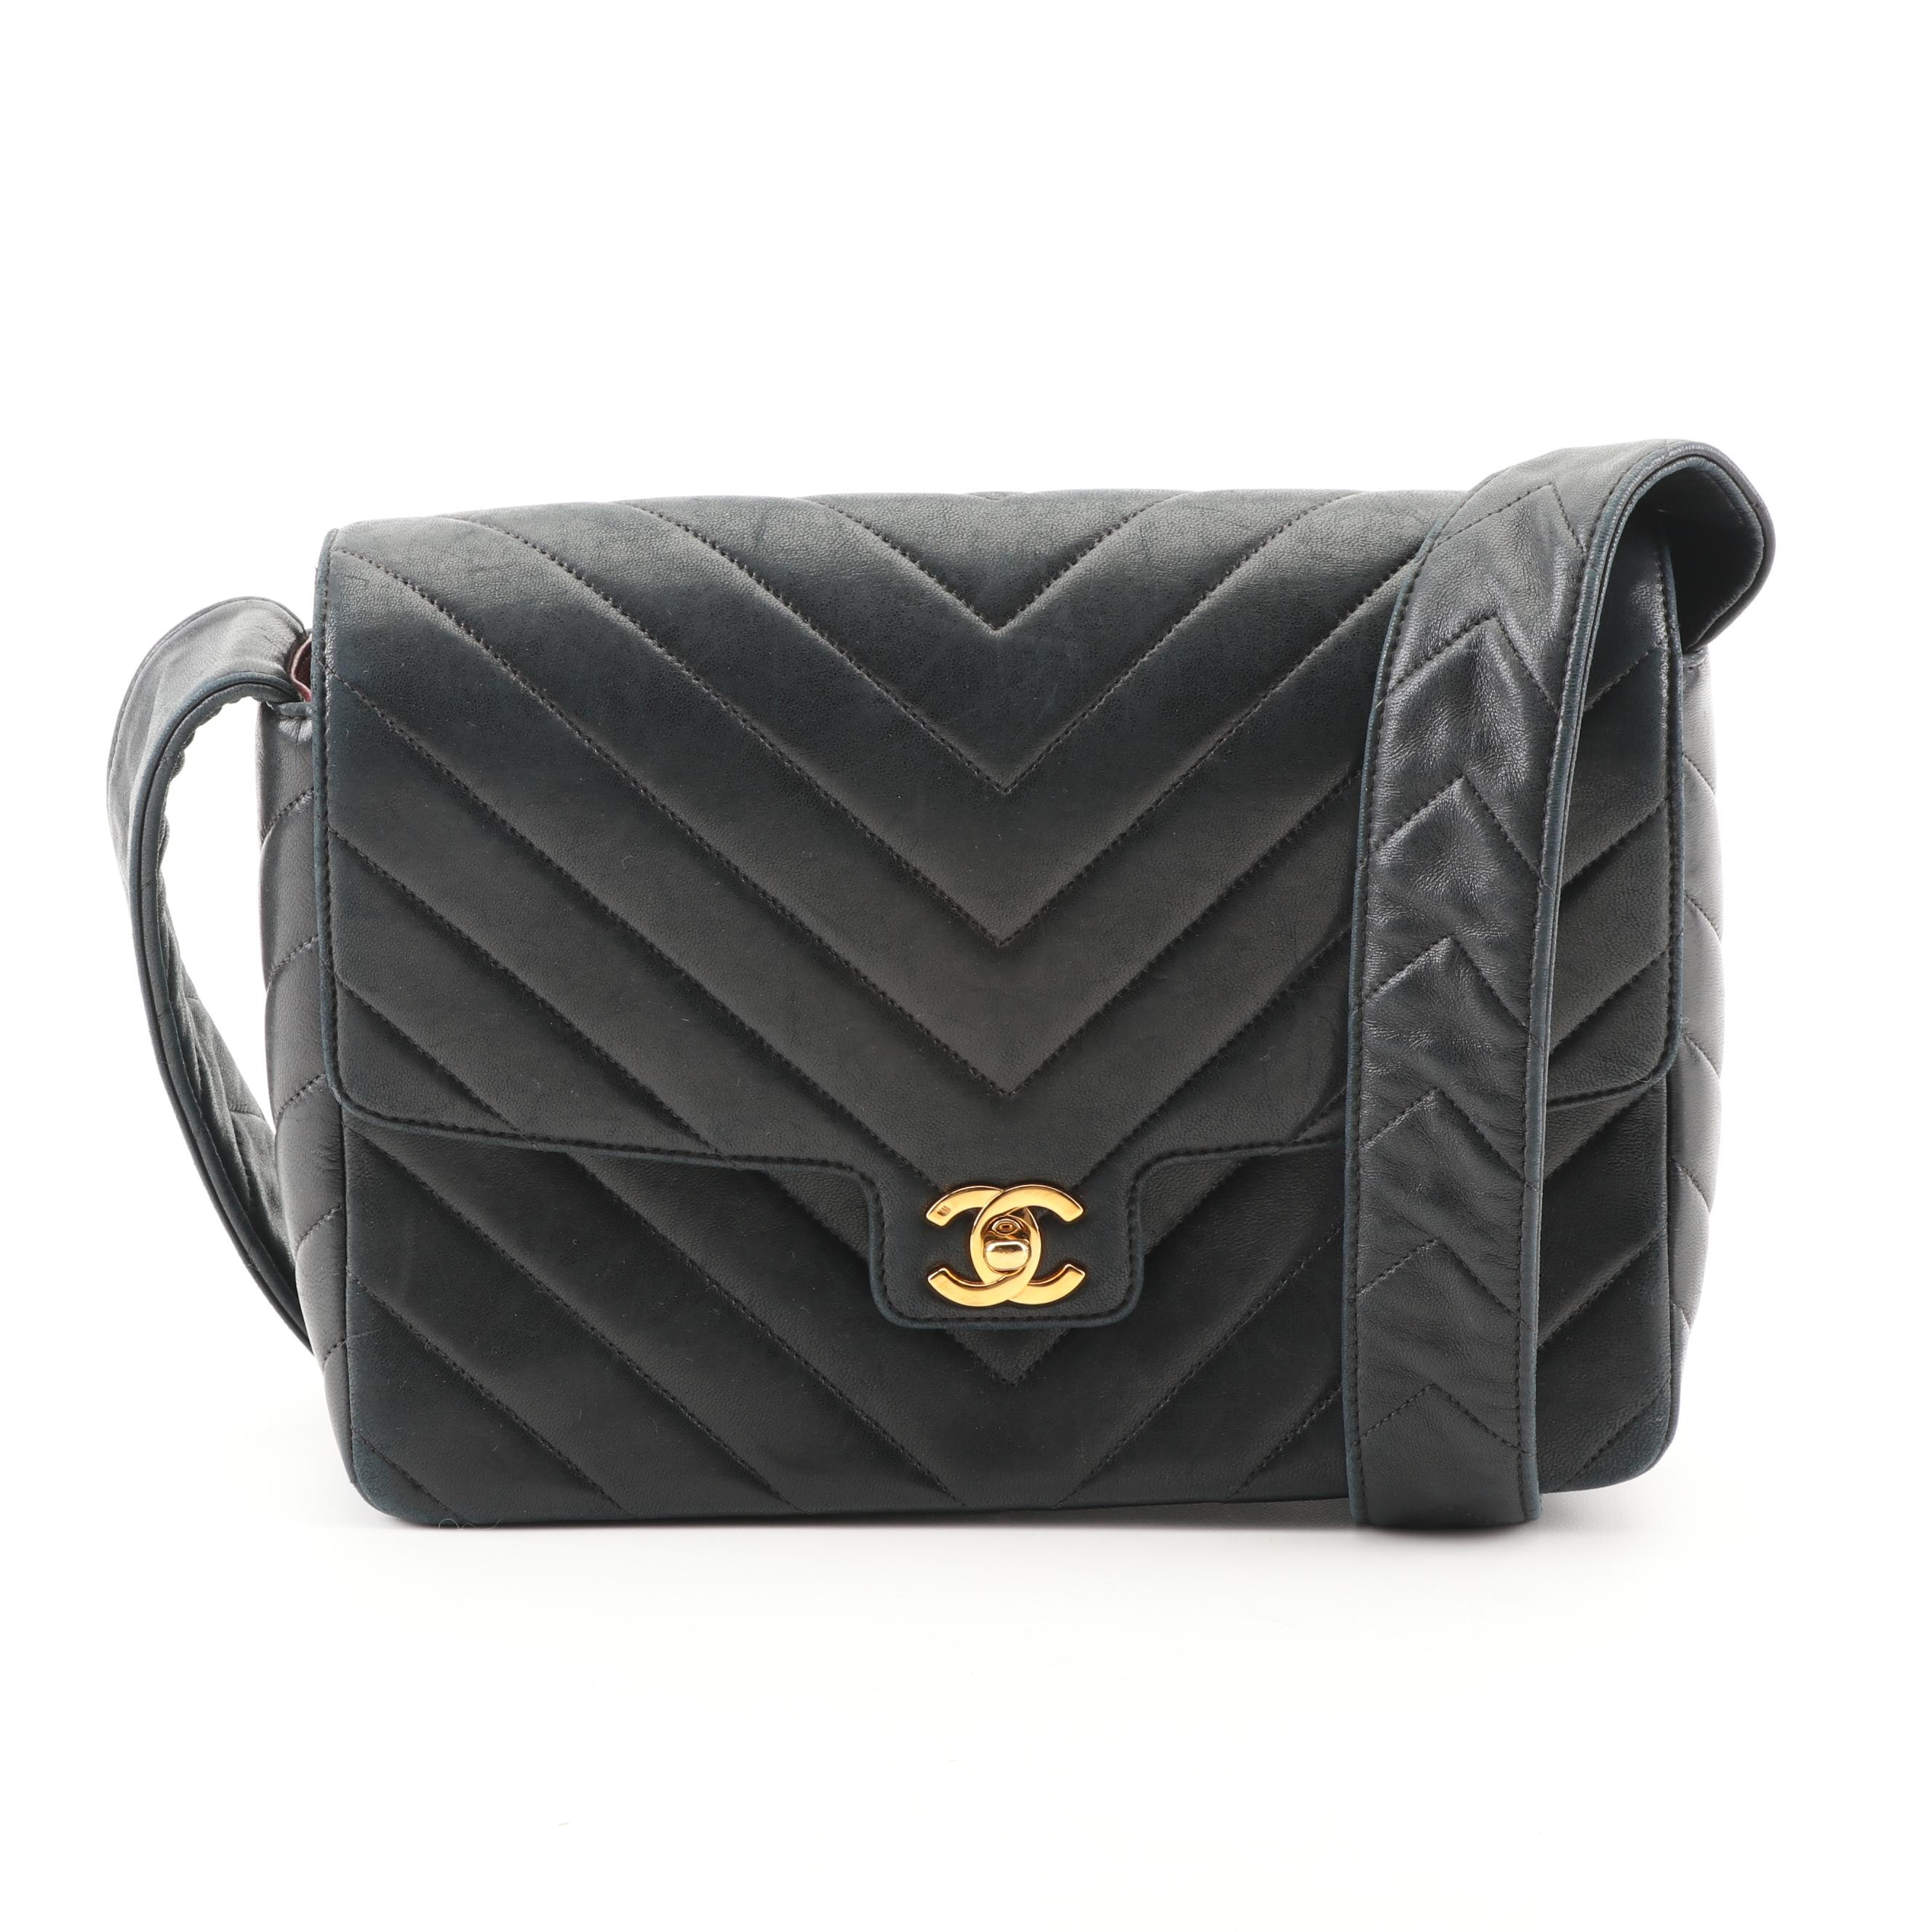 Circa 2014 Chanel Black Chevron Quilted Leather Flap Bag